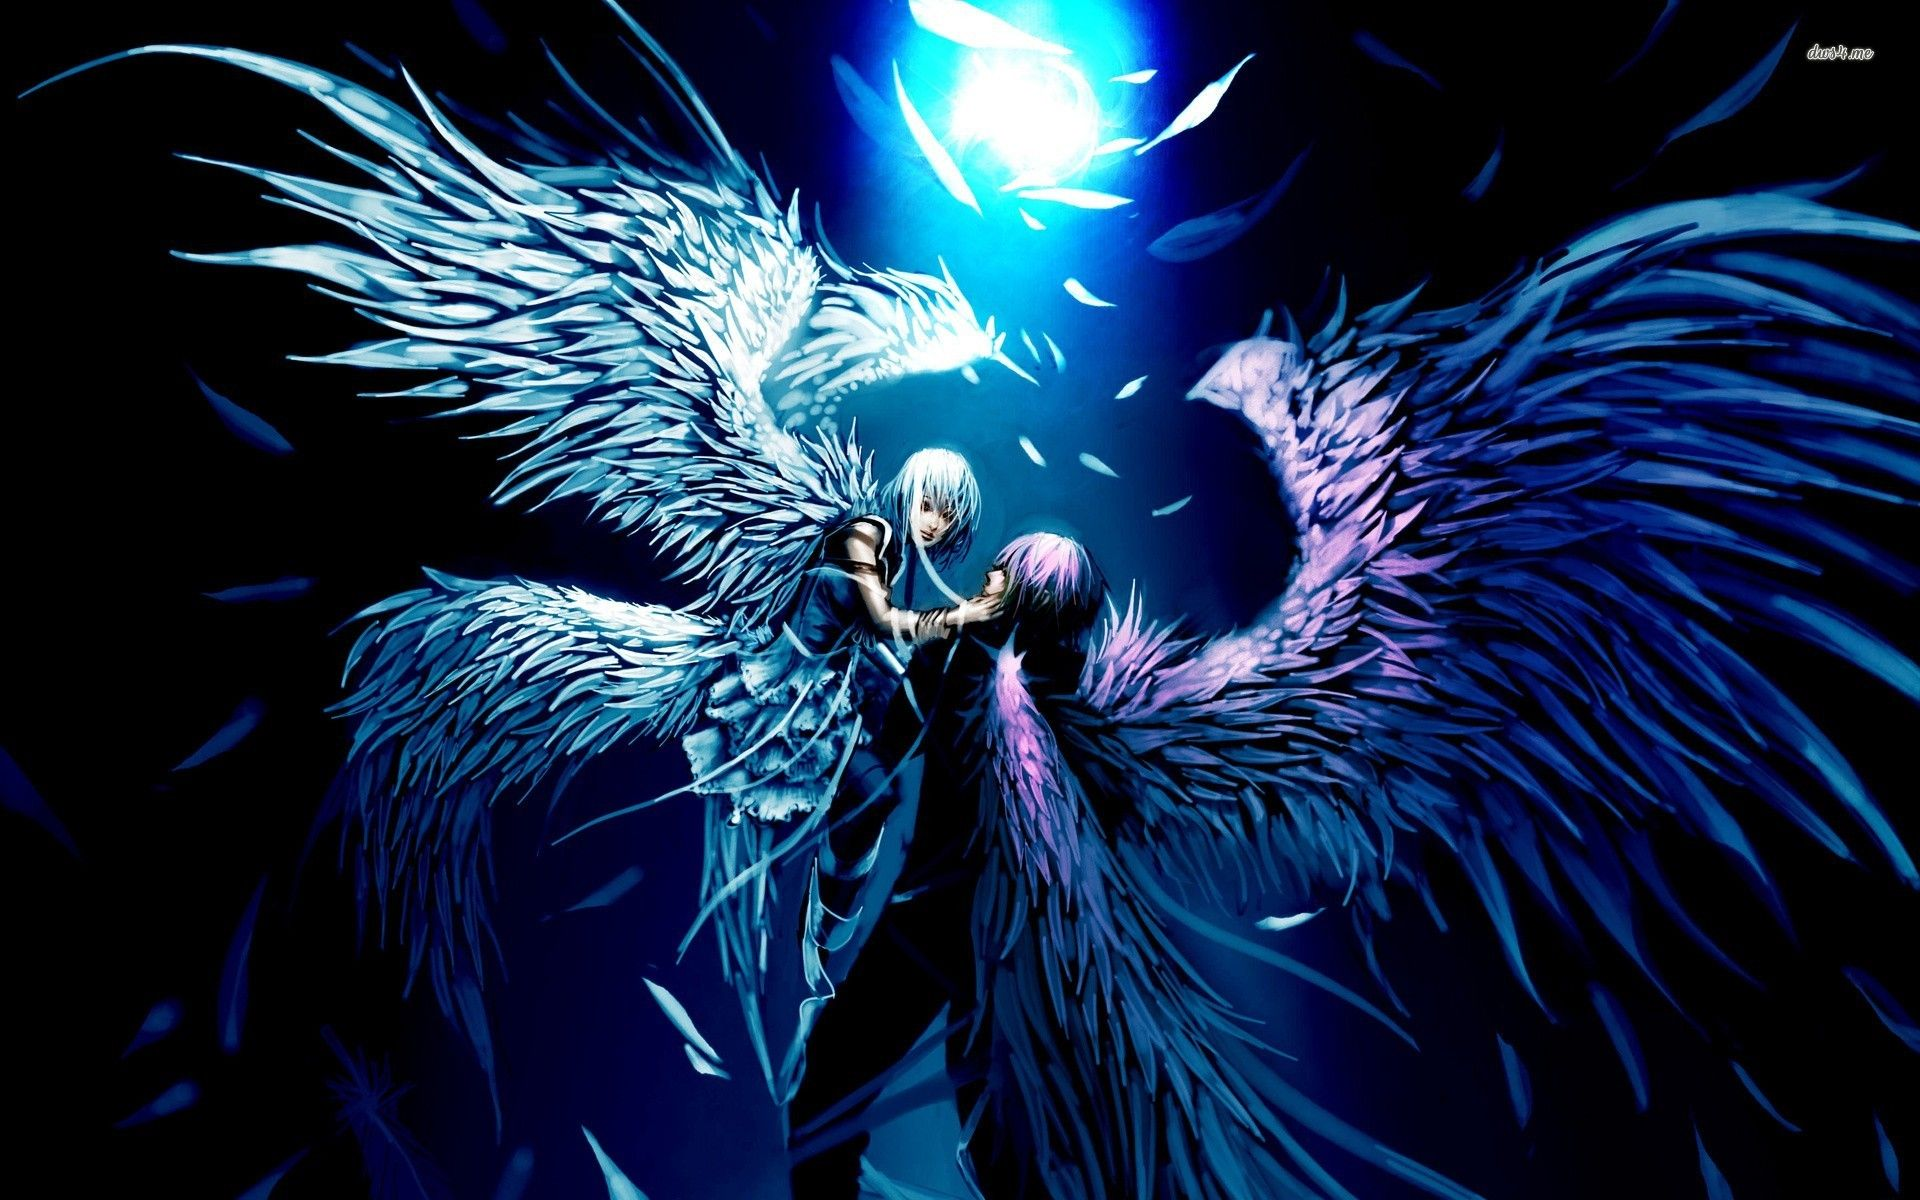 Angel And Demon Lovers Anime Desktop Background Dragons Fairys